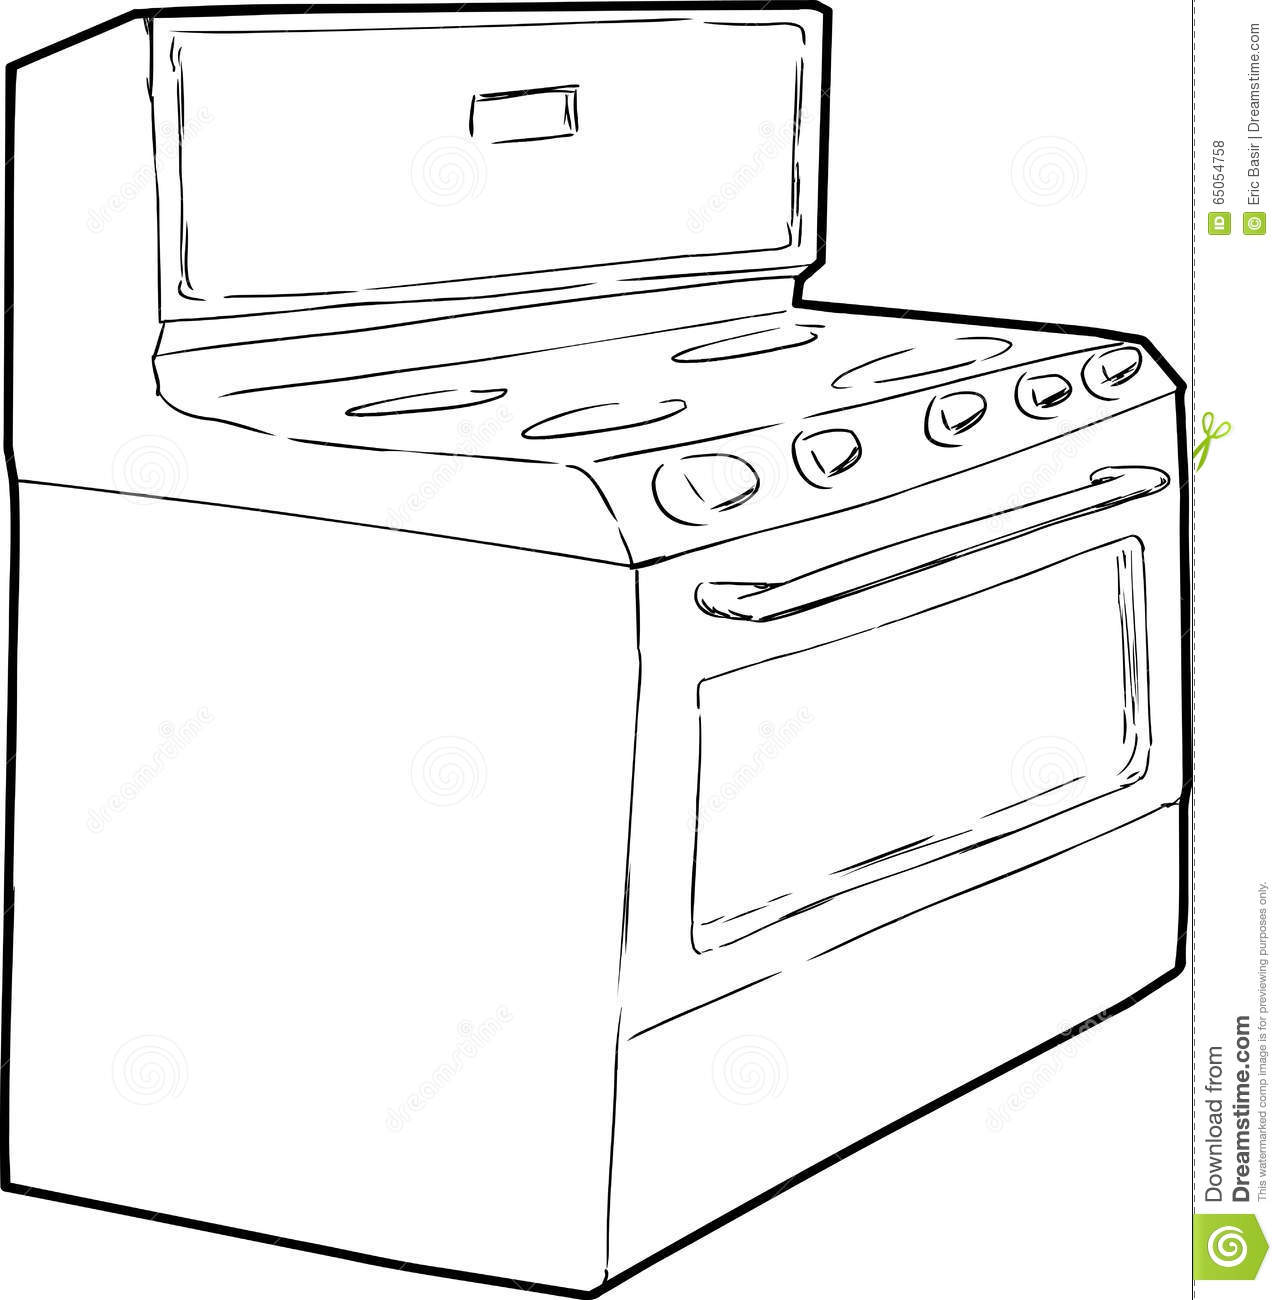 Generic Single Induction Stove Outline Stock Illustration